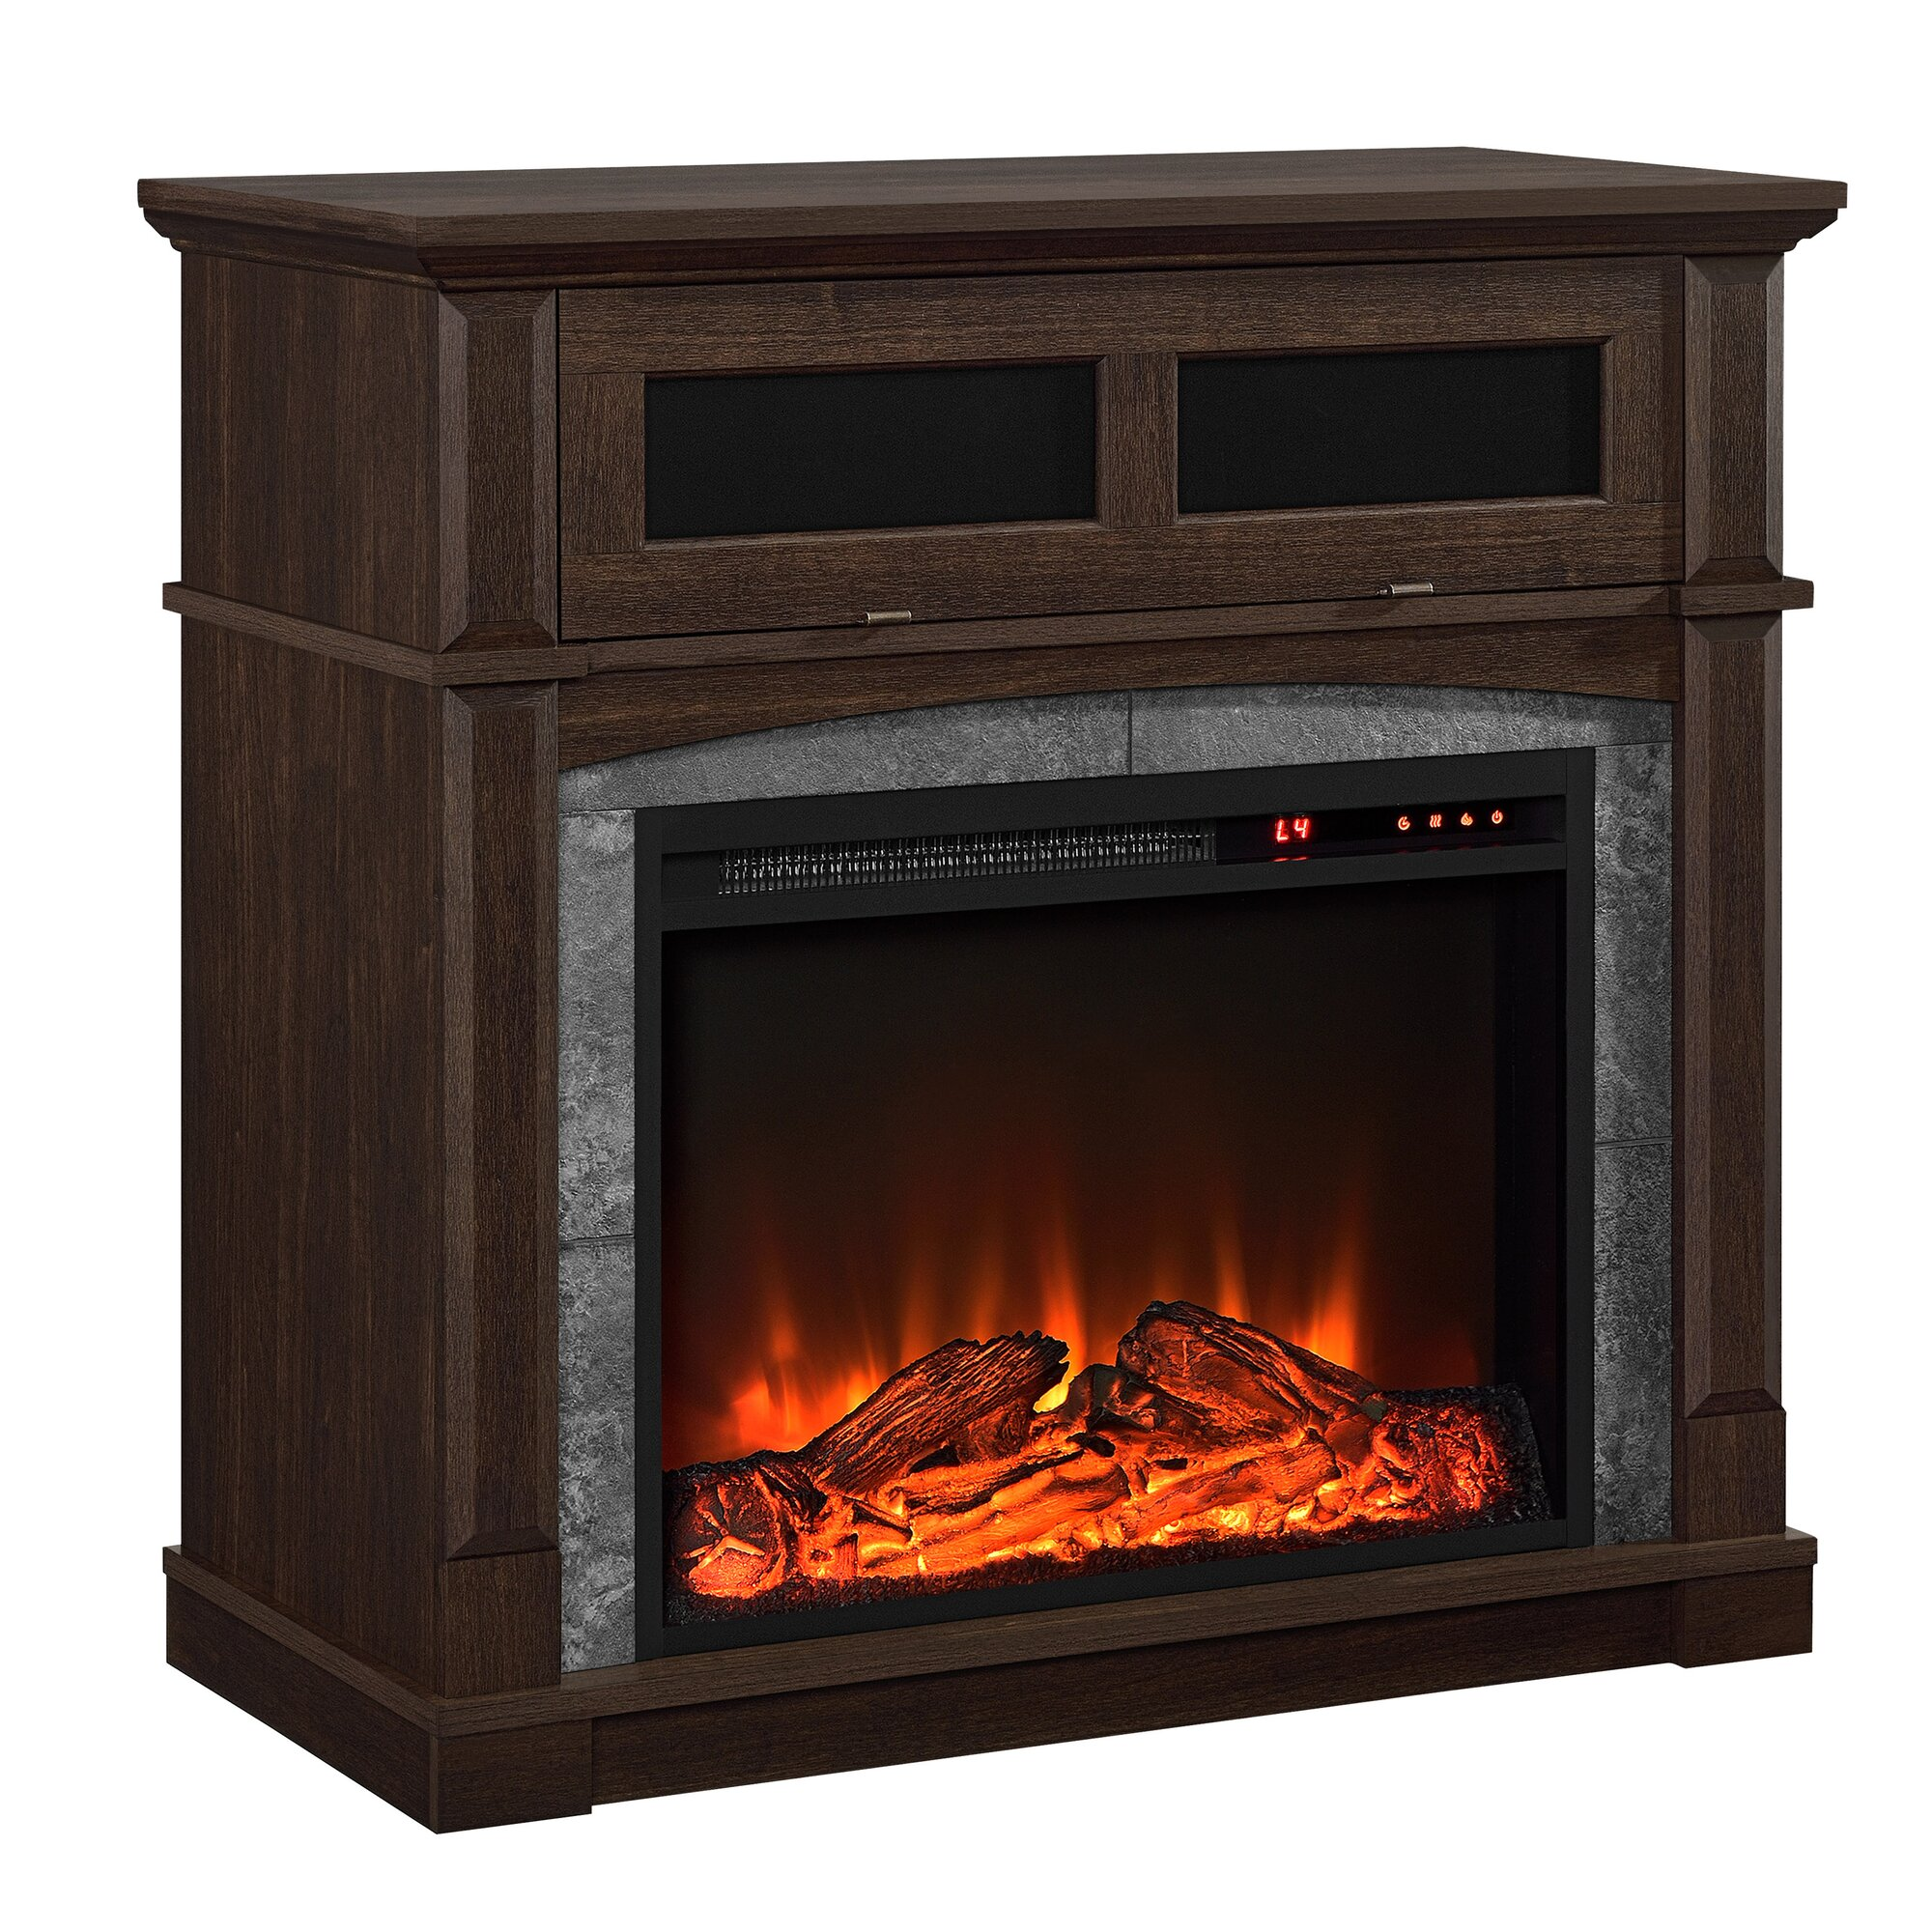 darby home co morgandale 34 tv stand with electric fireplace reviews. Black Bedroom Furniture Sets. Home Design Ideas